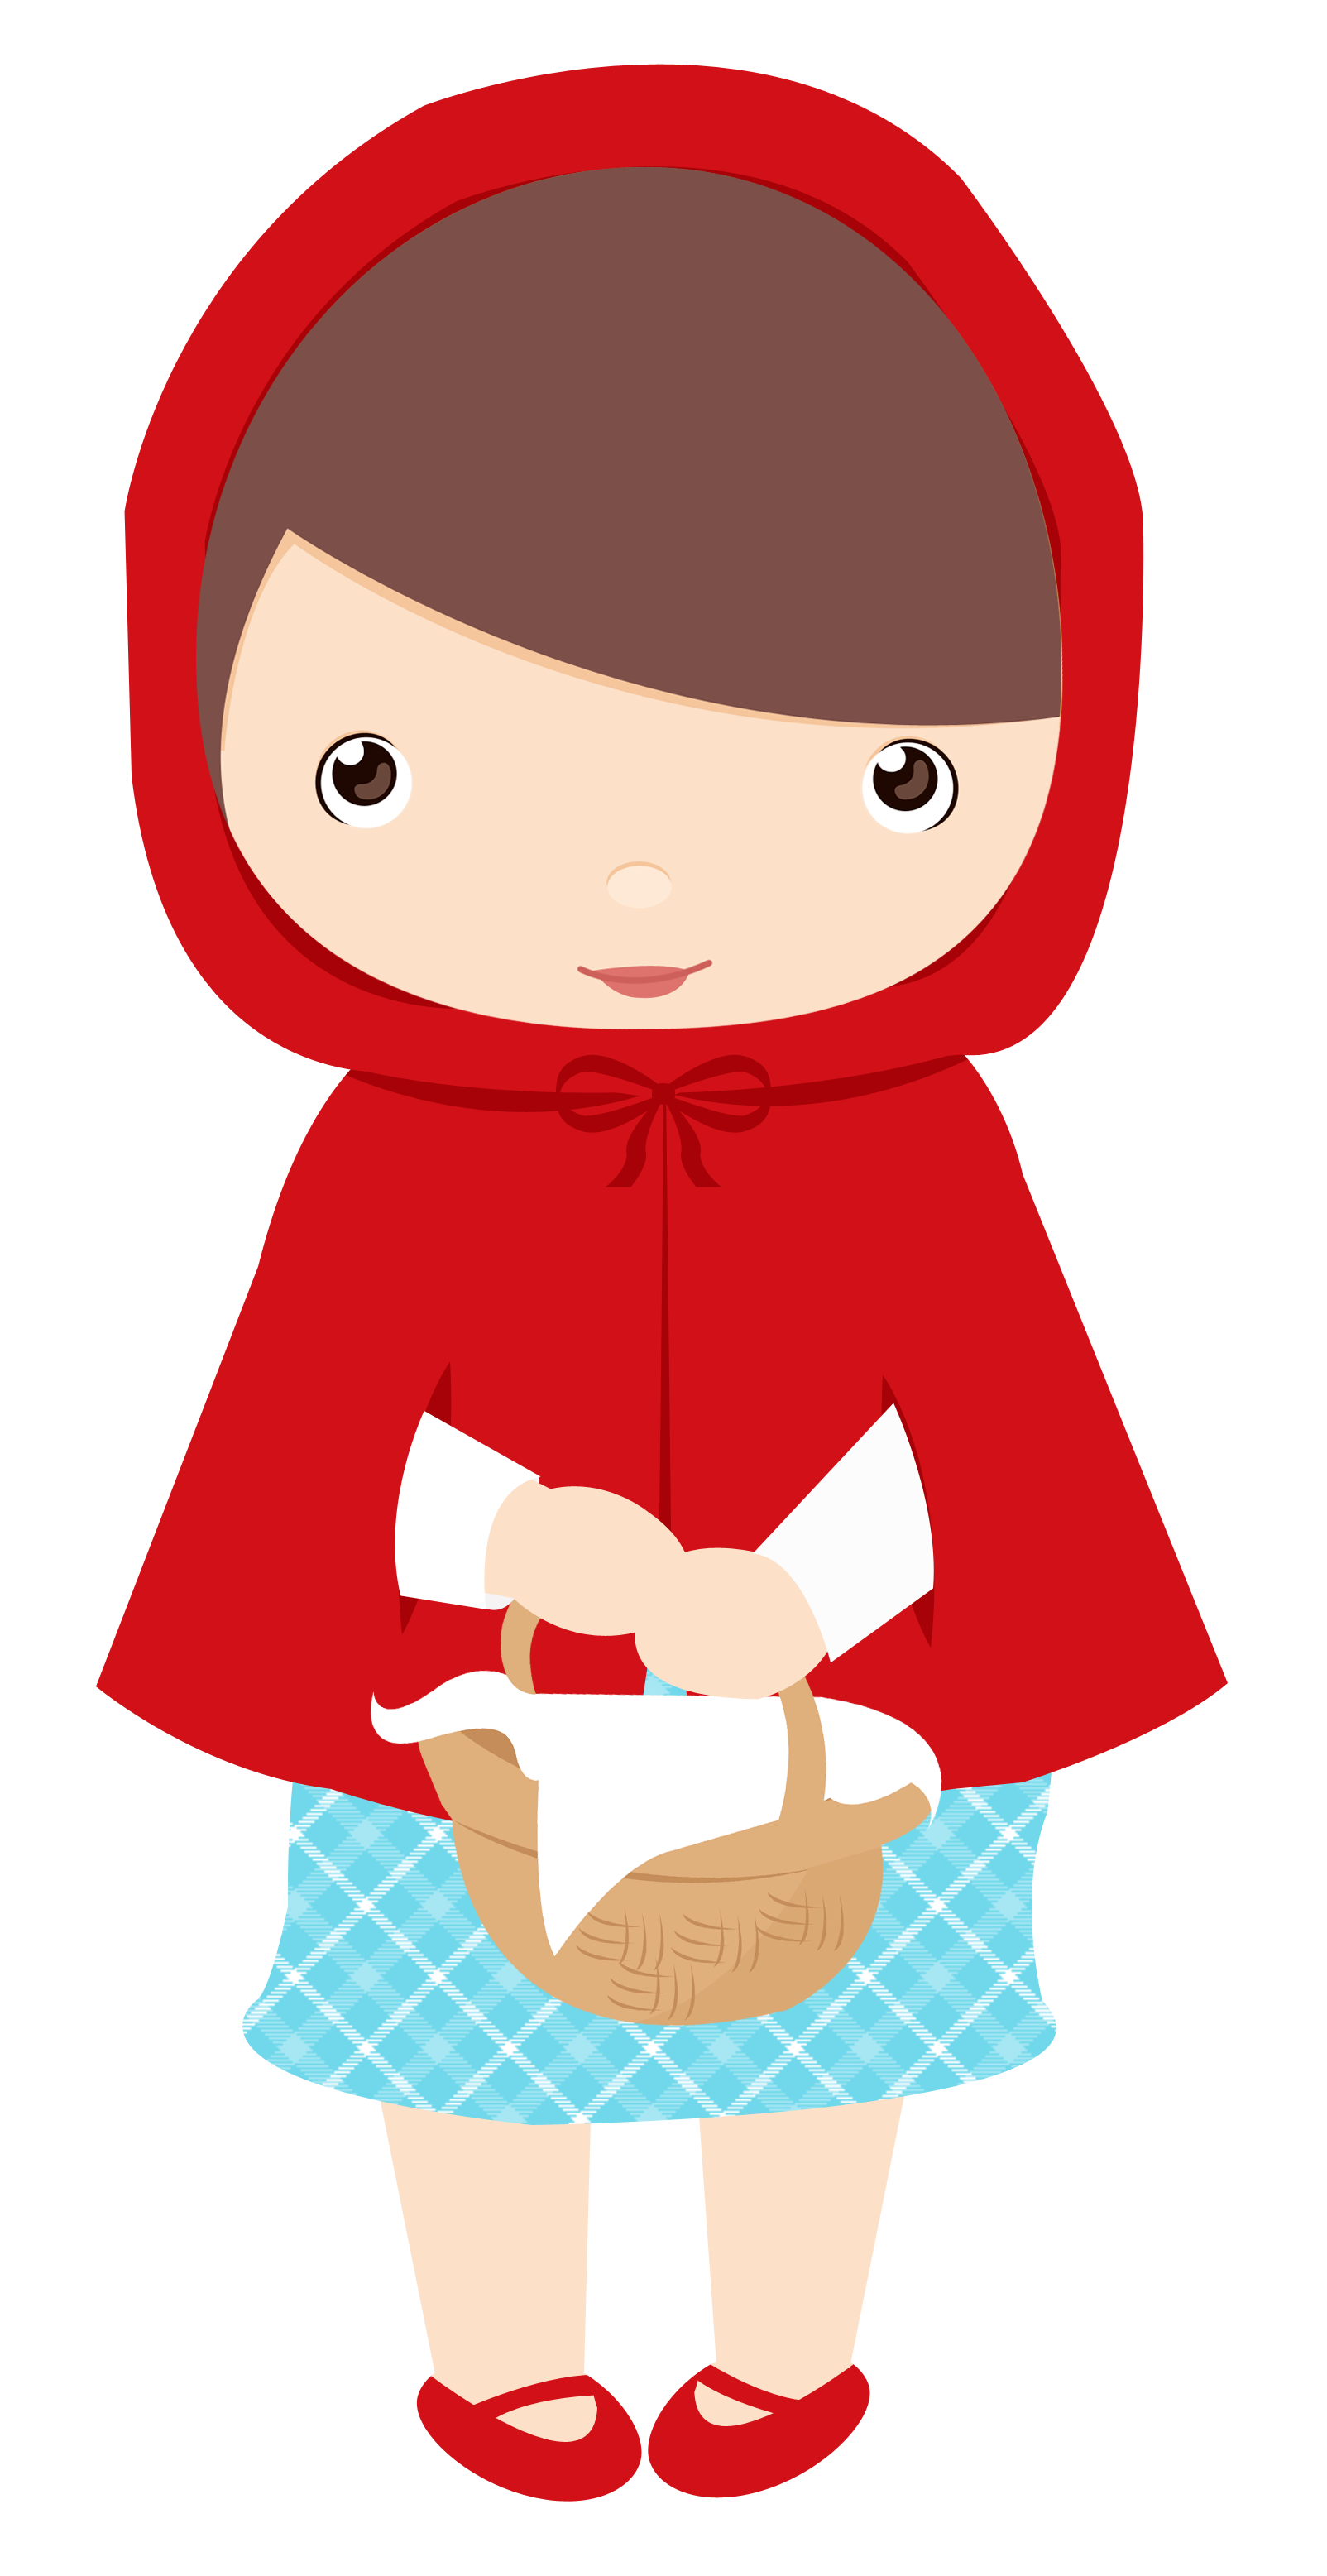 pin by jennifer knight on avery s project pinterest red riding rh pinterest ca little red riding hood characters clipart little red riding hood characters clipart